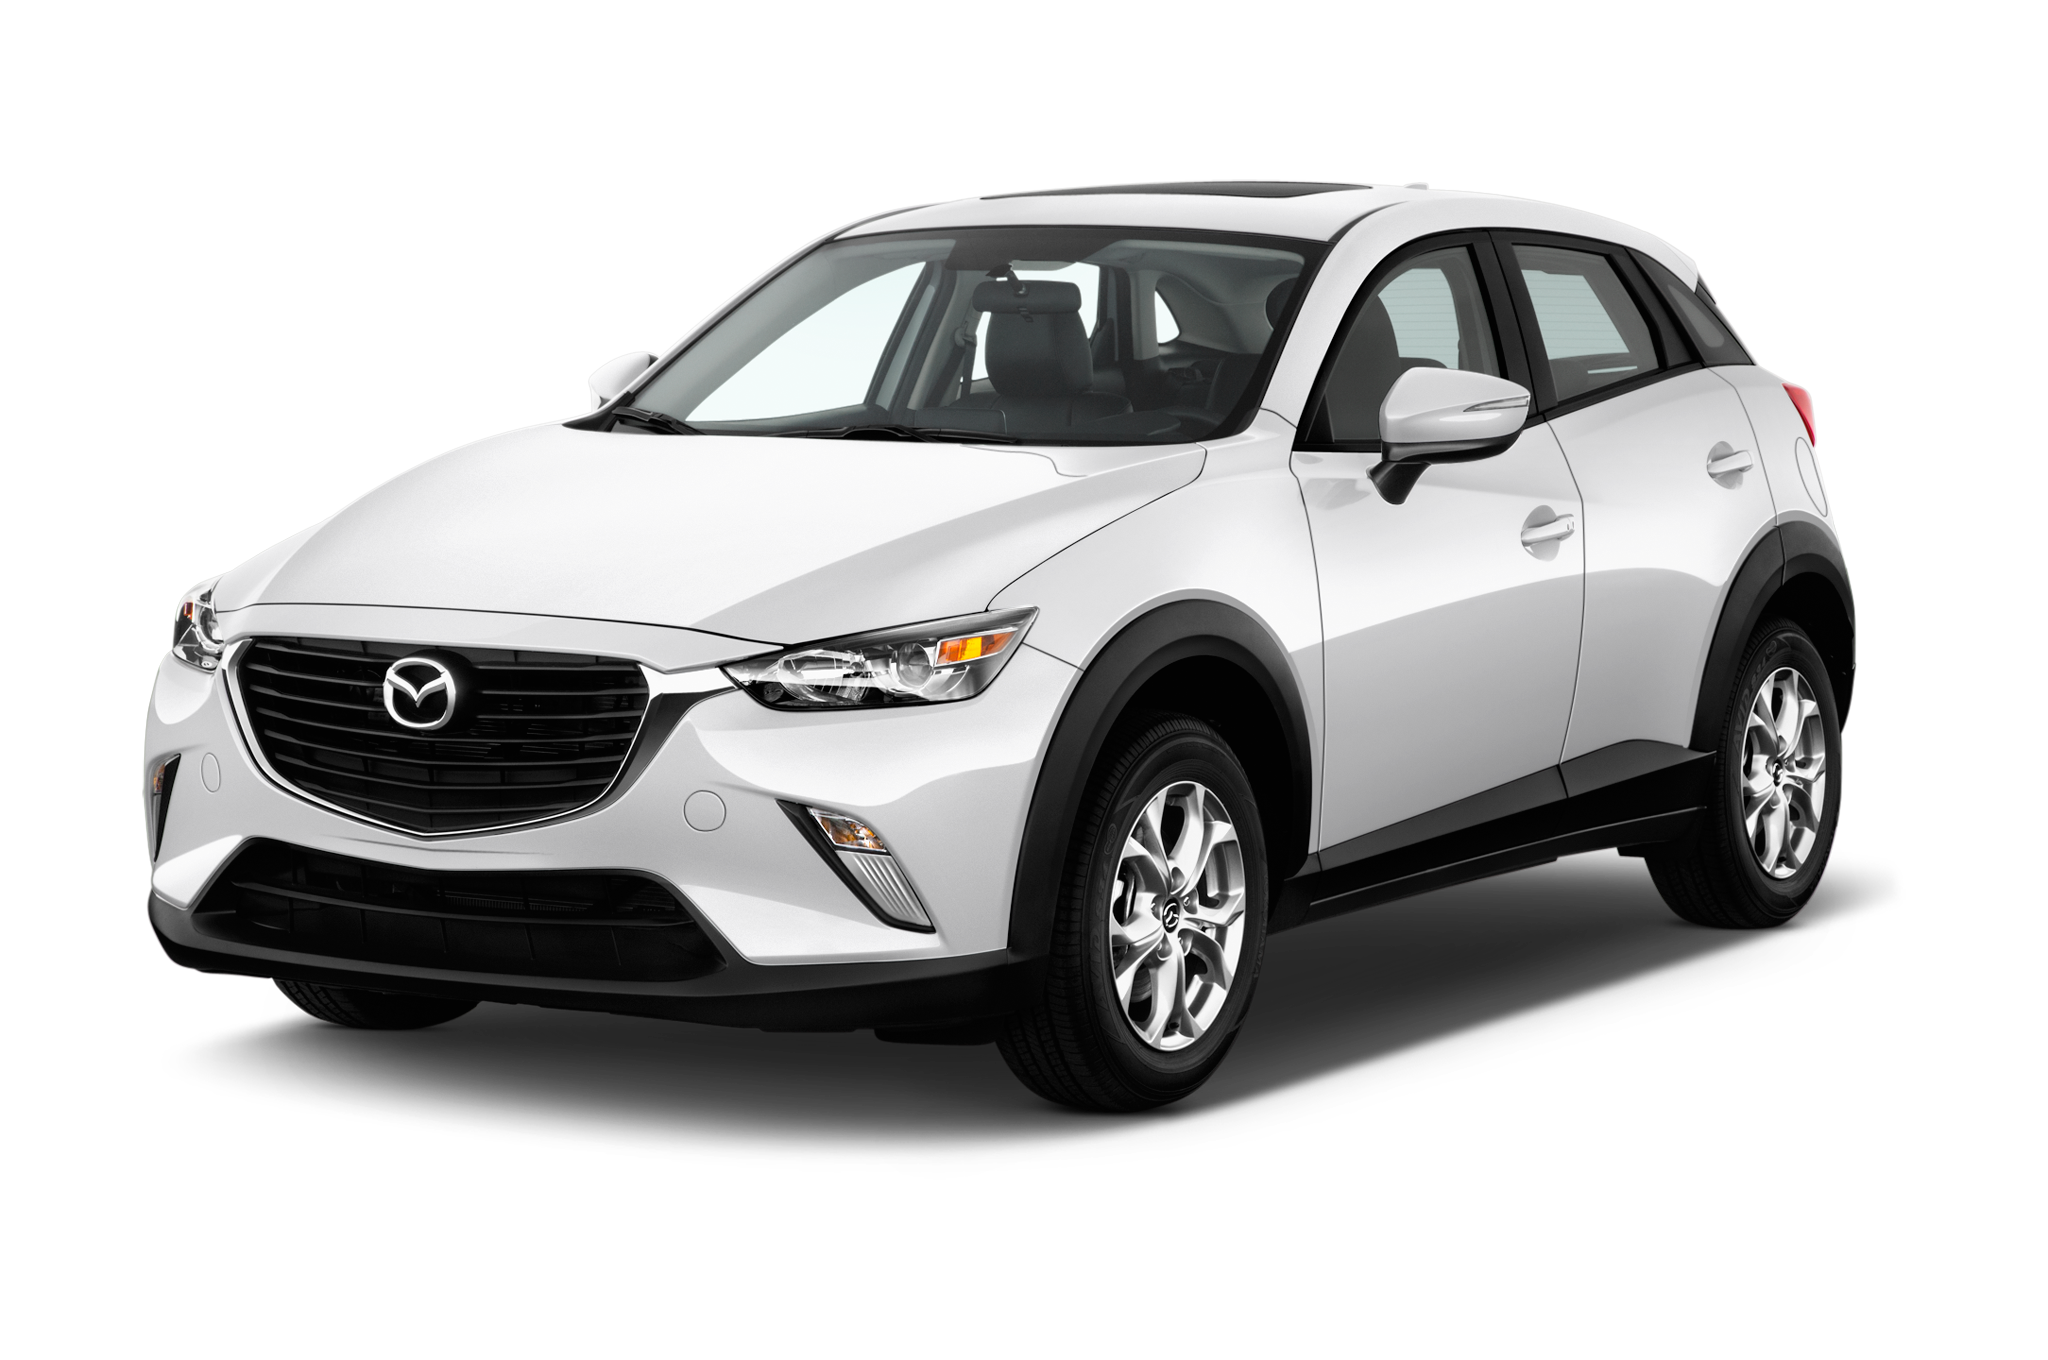 2016 mazda cx 3 crossover earns iihs top safety pick automobile magazine. Black Bedroom Furniture Sets. Home Design Ideas